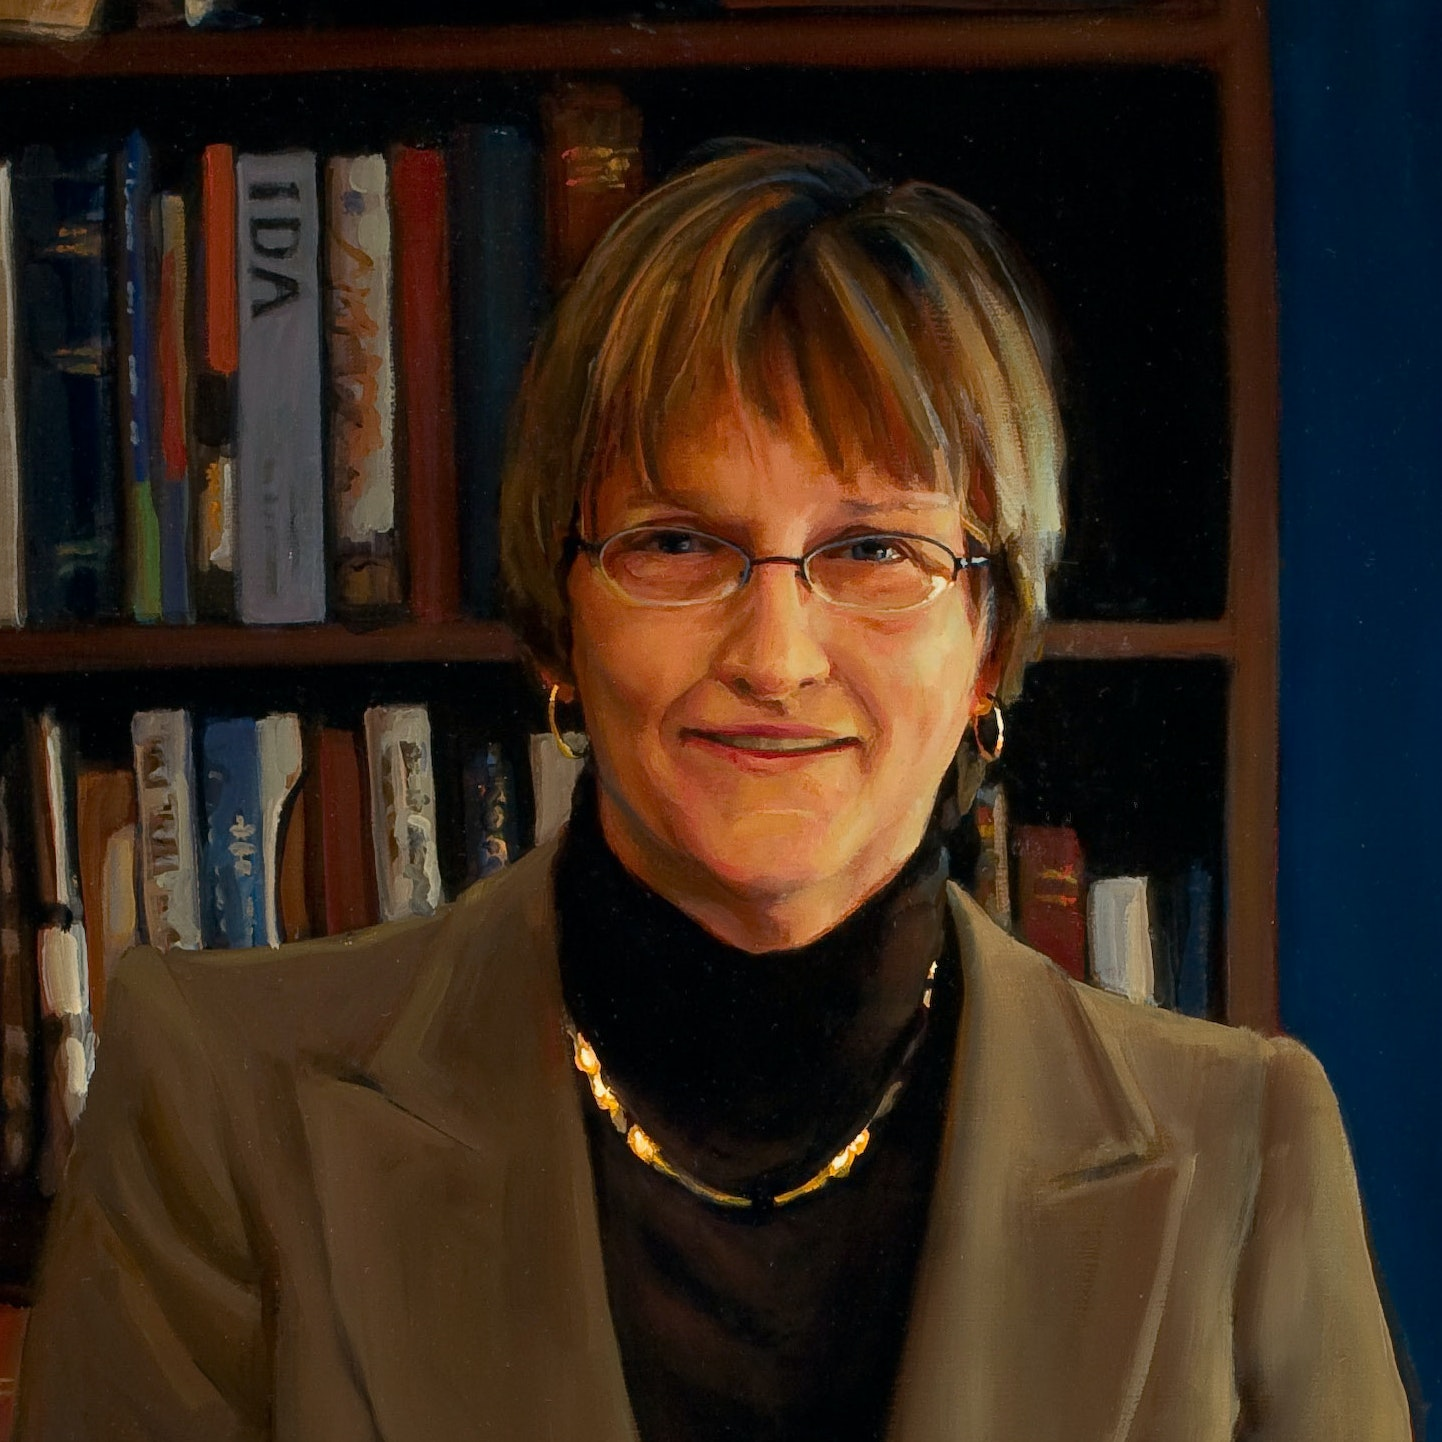 Portrait of Drew Gilpin Faust